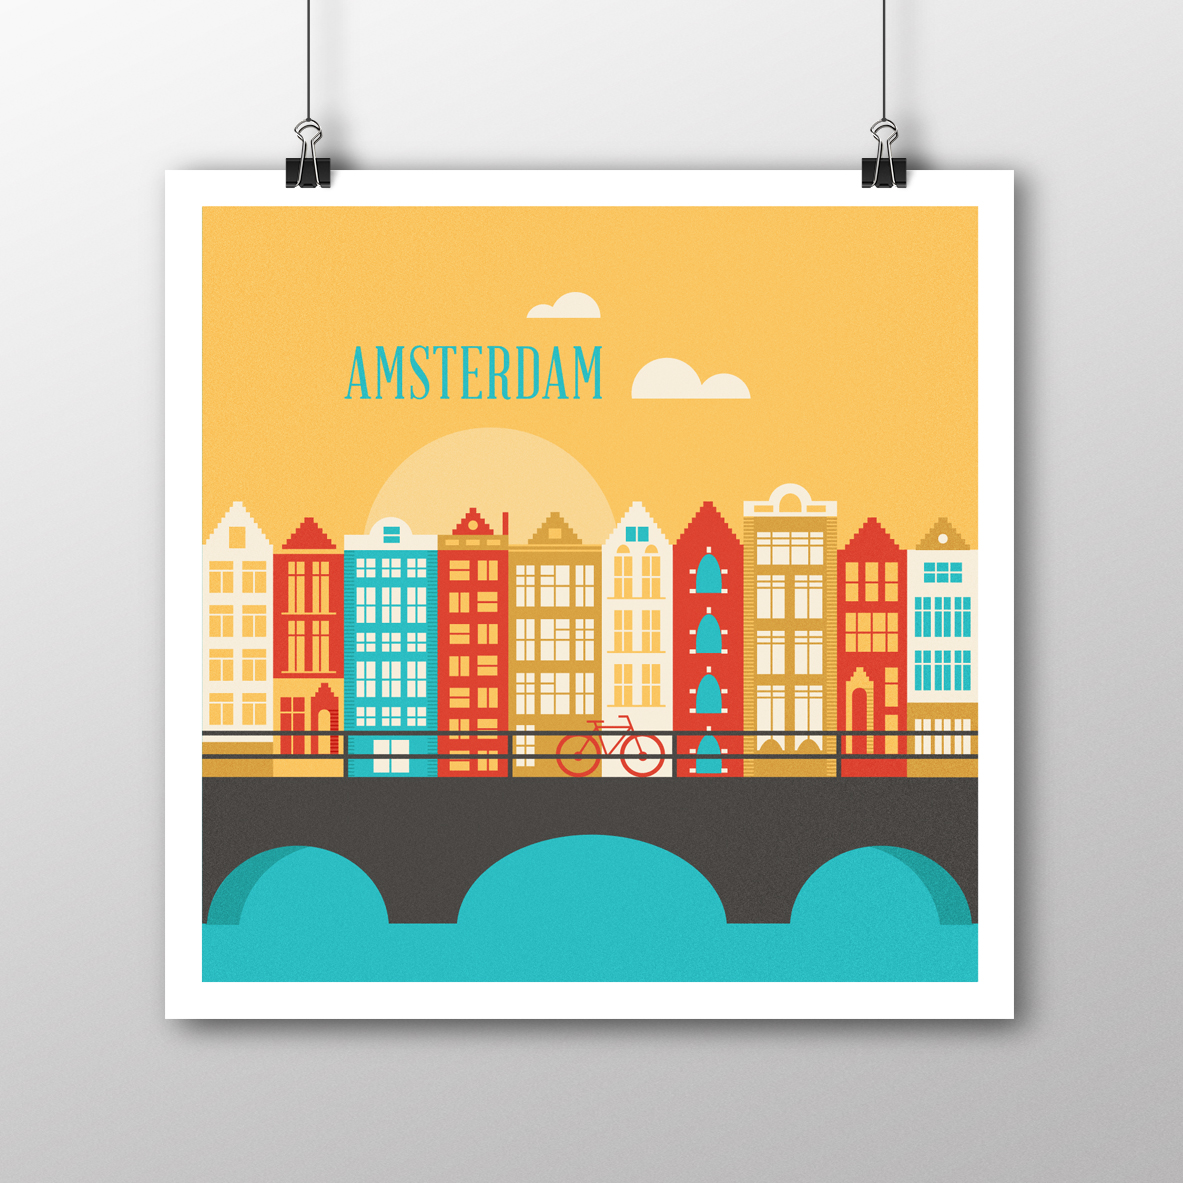 Amsterdam Illustrated Poster